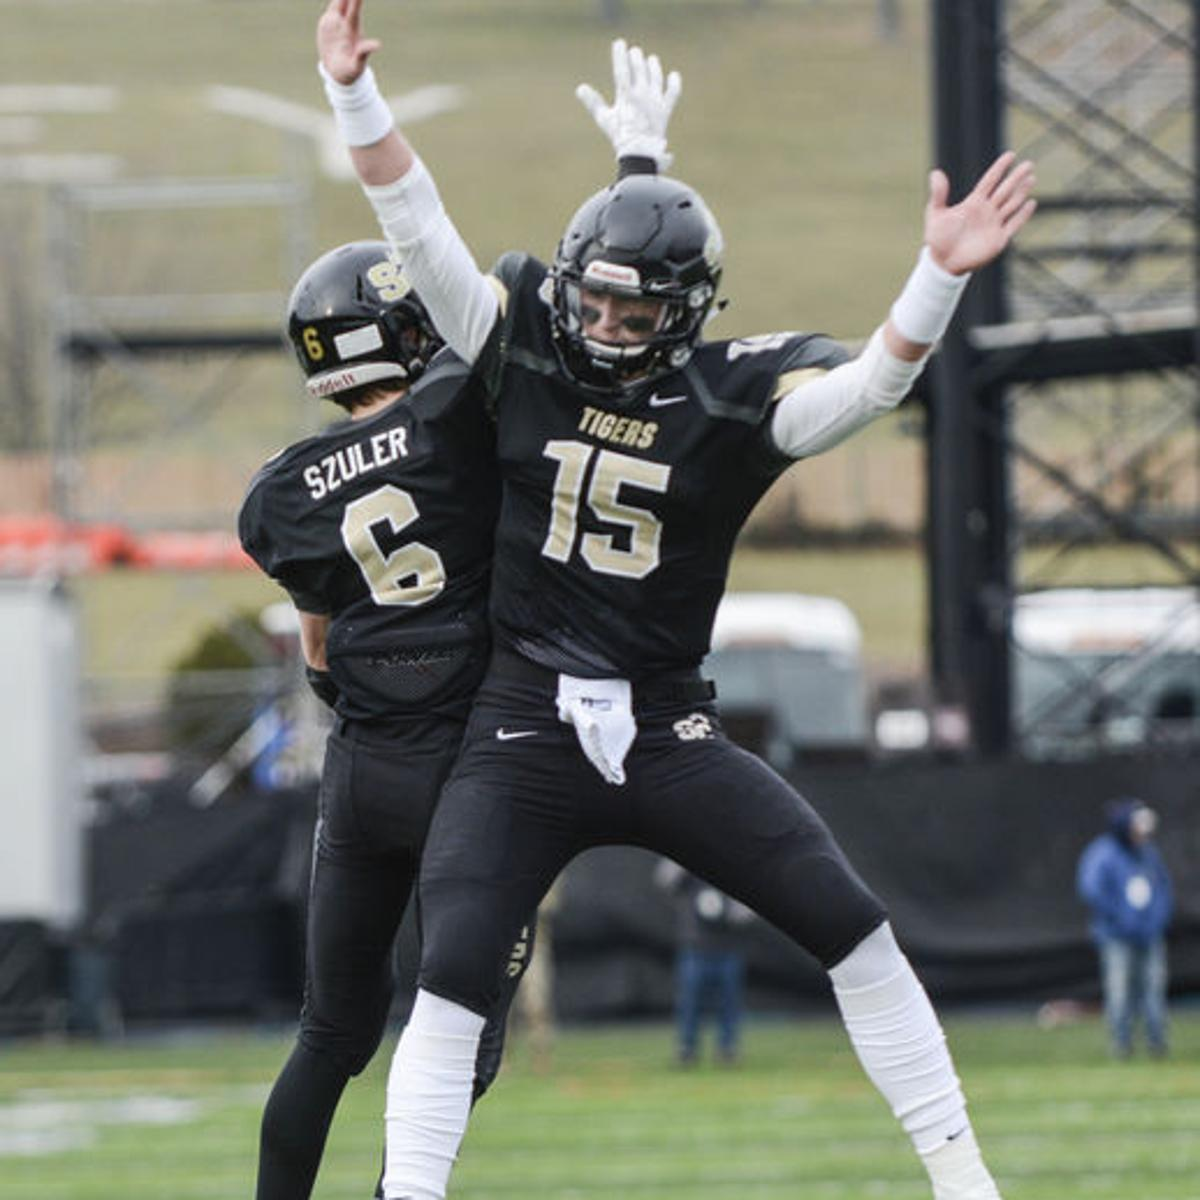 Hac Iii Preview Teams Aiming For Southern Columbia In Hac Iii High School Football Dailyitem Com